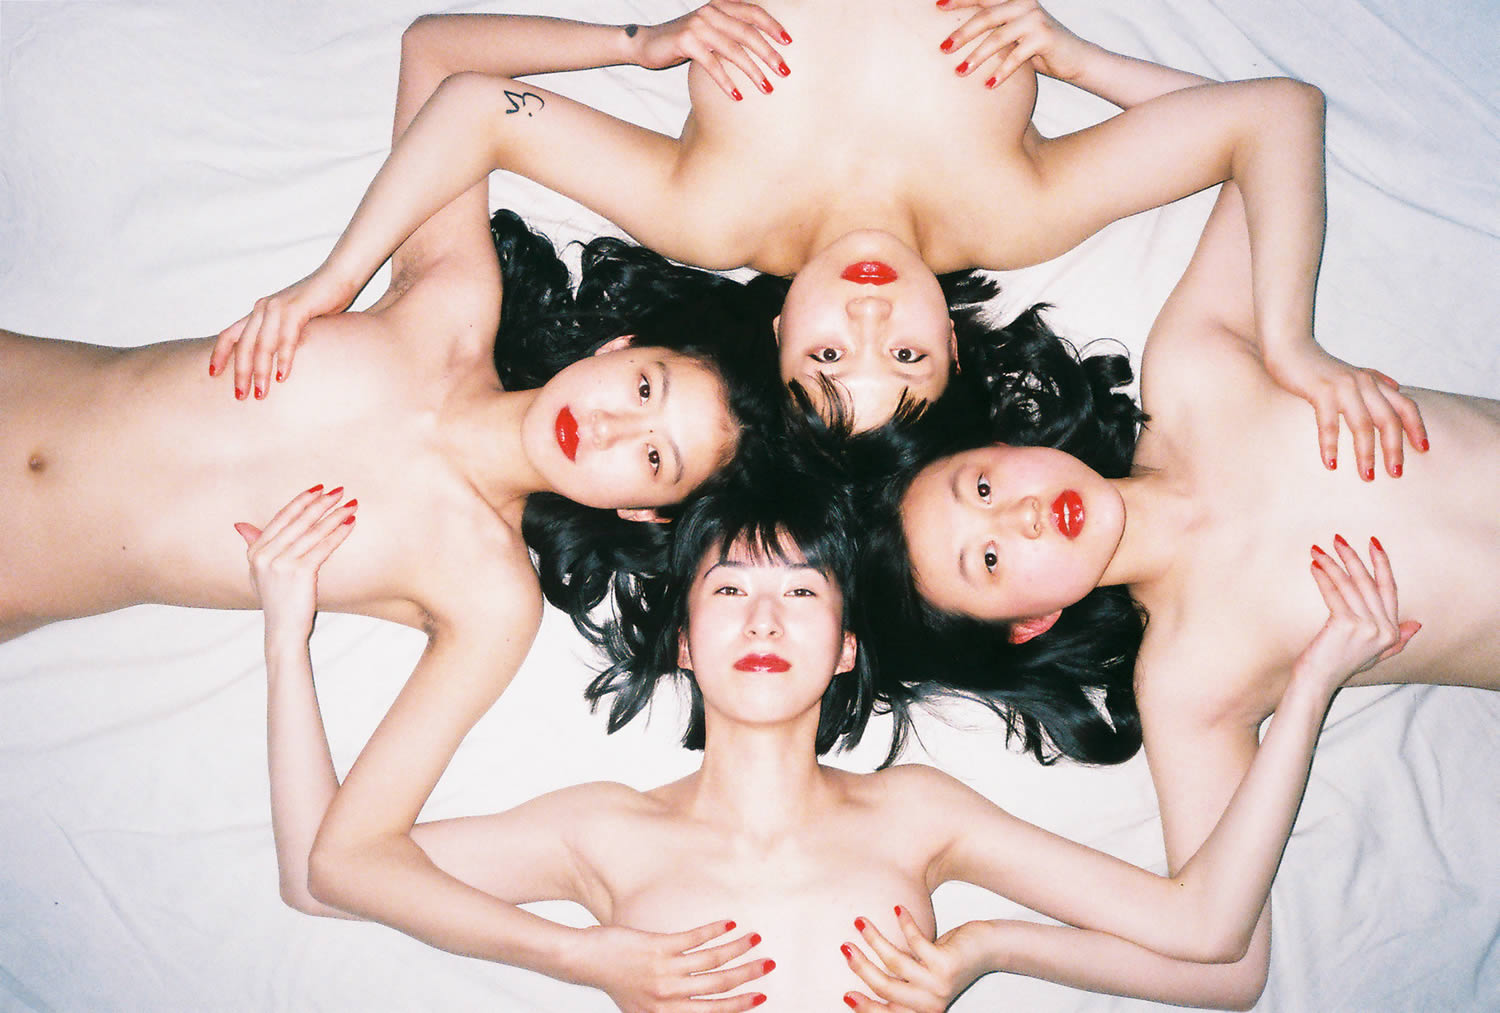 women forming a circle. photography